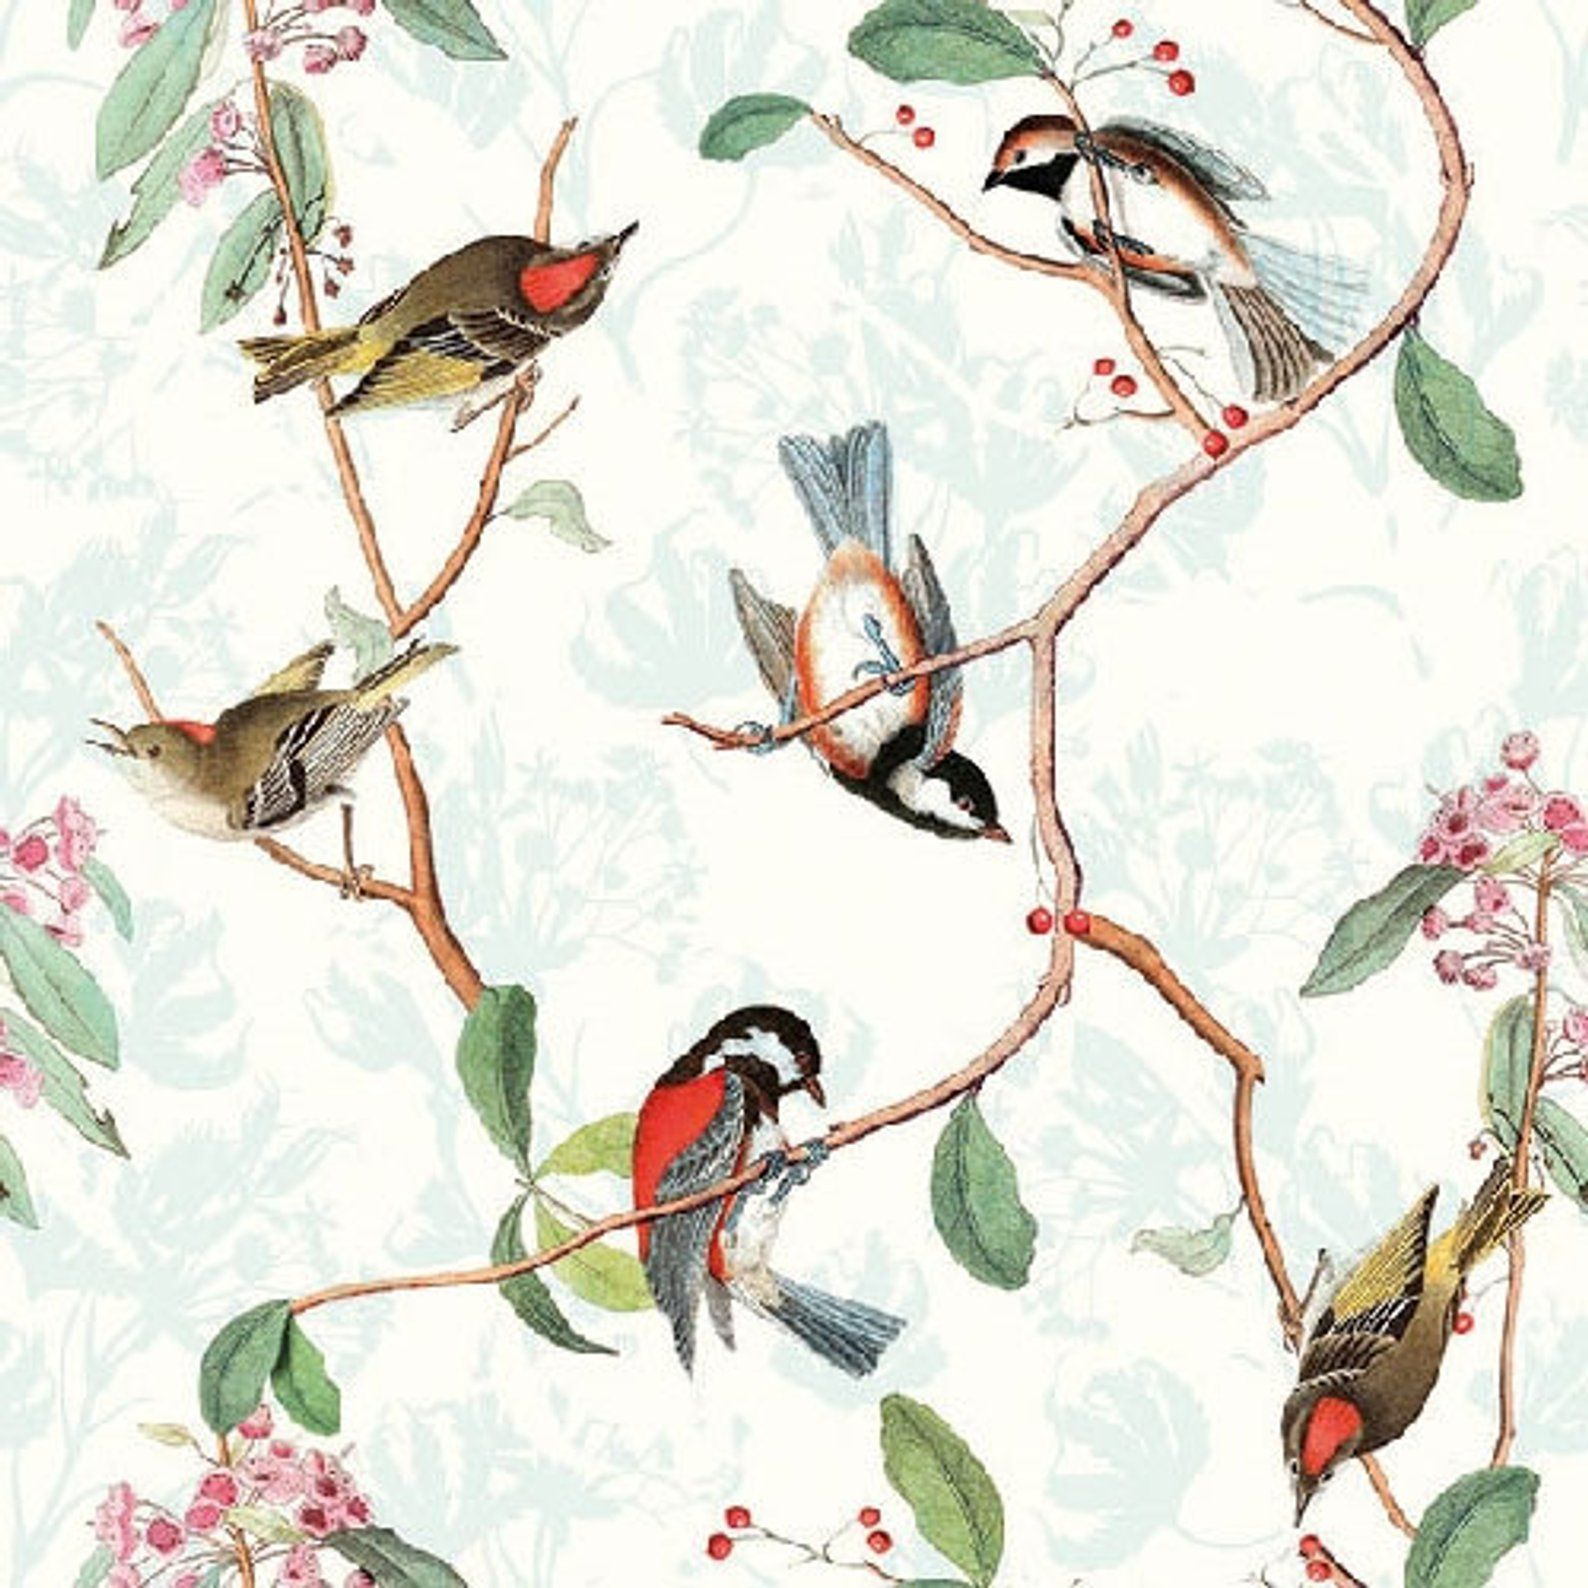 4x Paper Napkins for Decoupage Decopatch Craft Birdsong